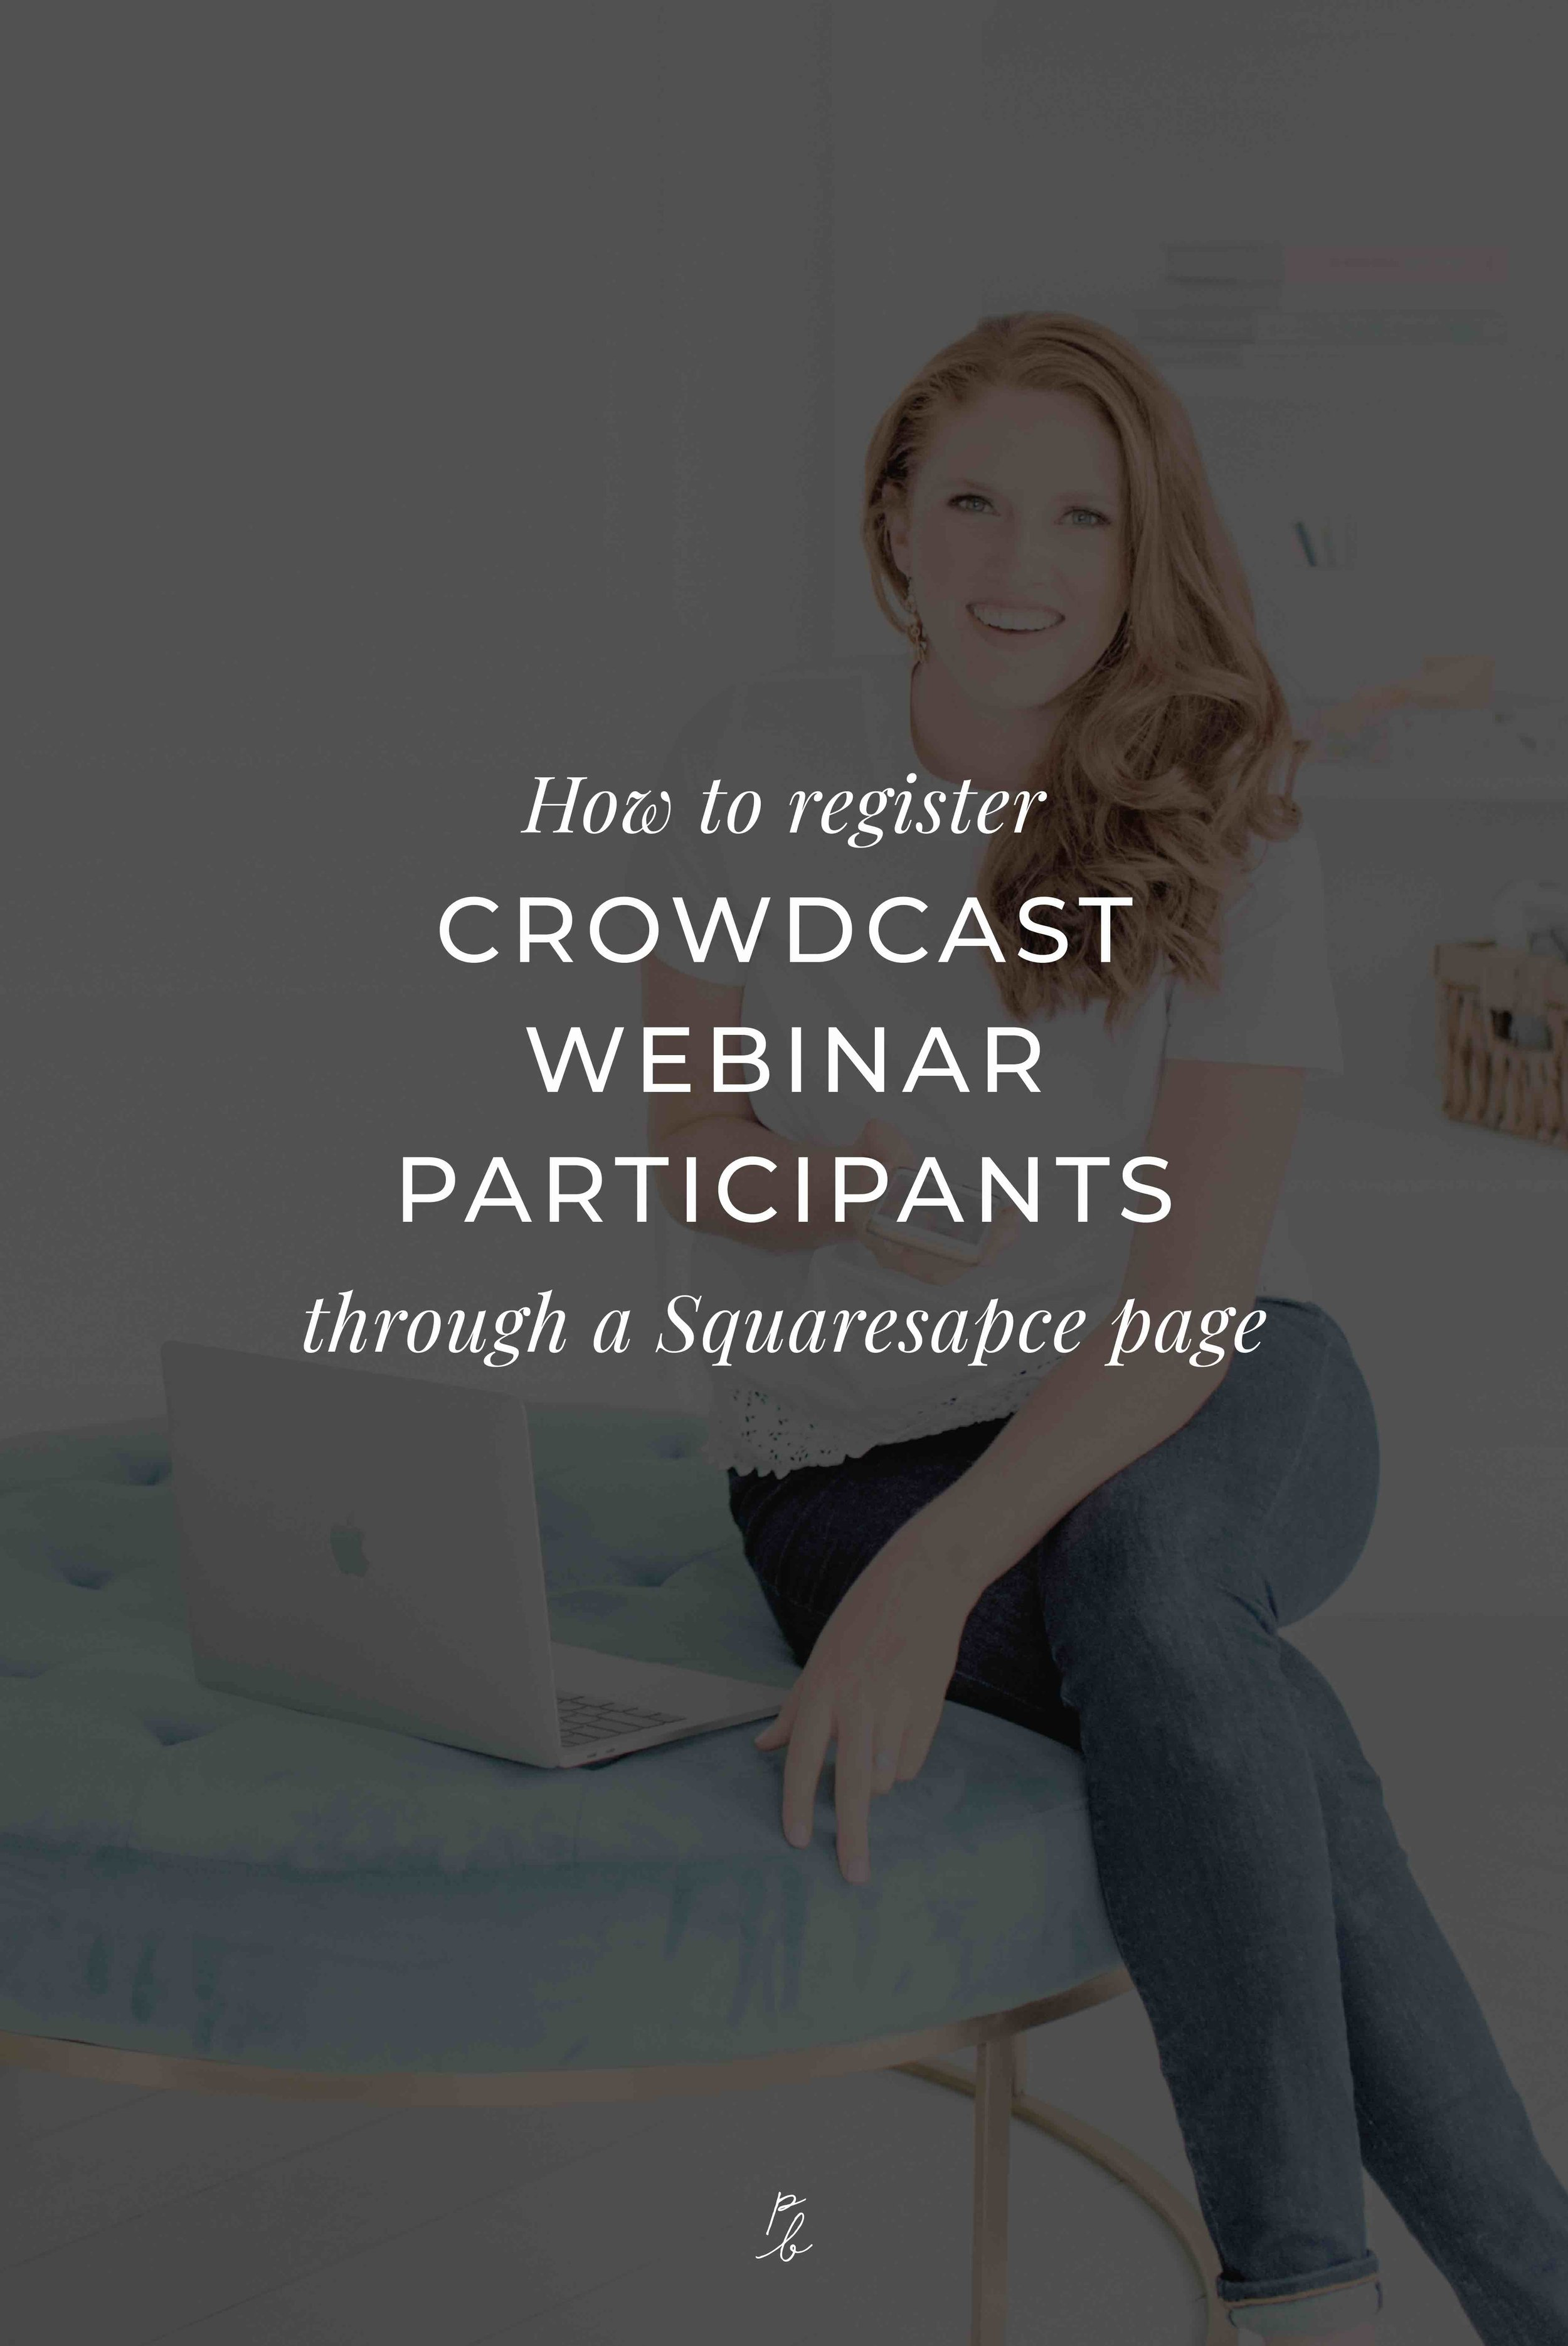 How to register Crowdcast webinar participants through a Squarespace page-07.jpeg